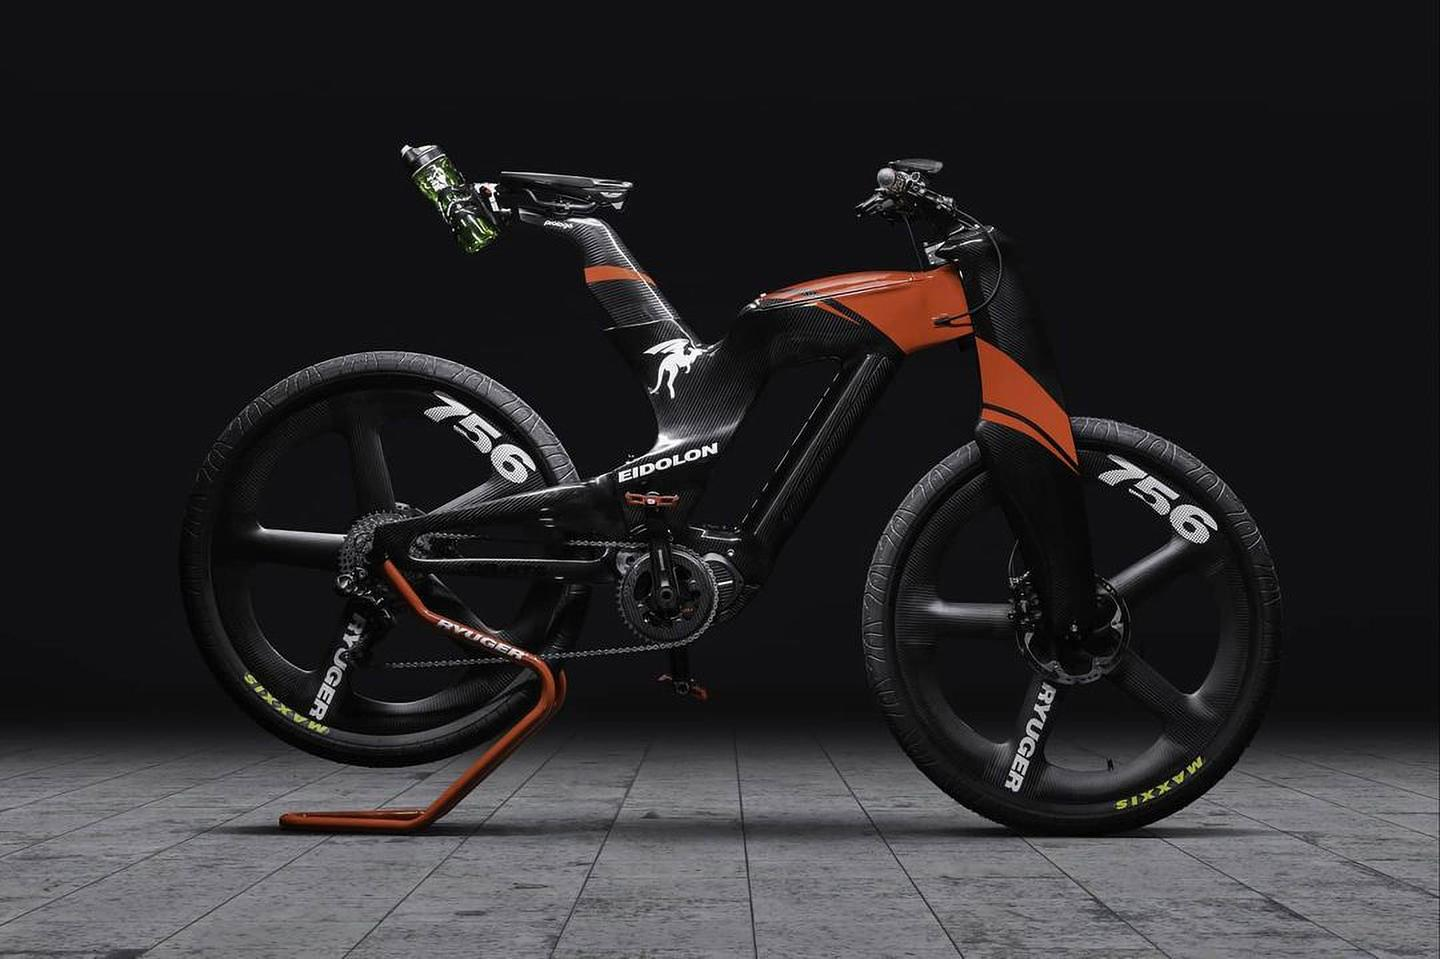 The entire Eidolon ebike weighs just 19 kg